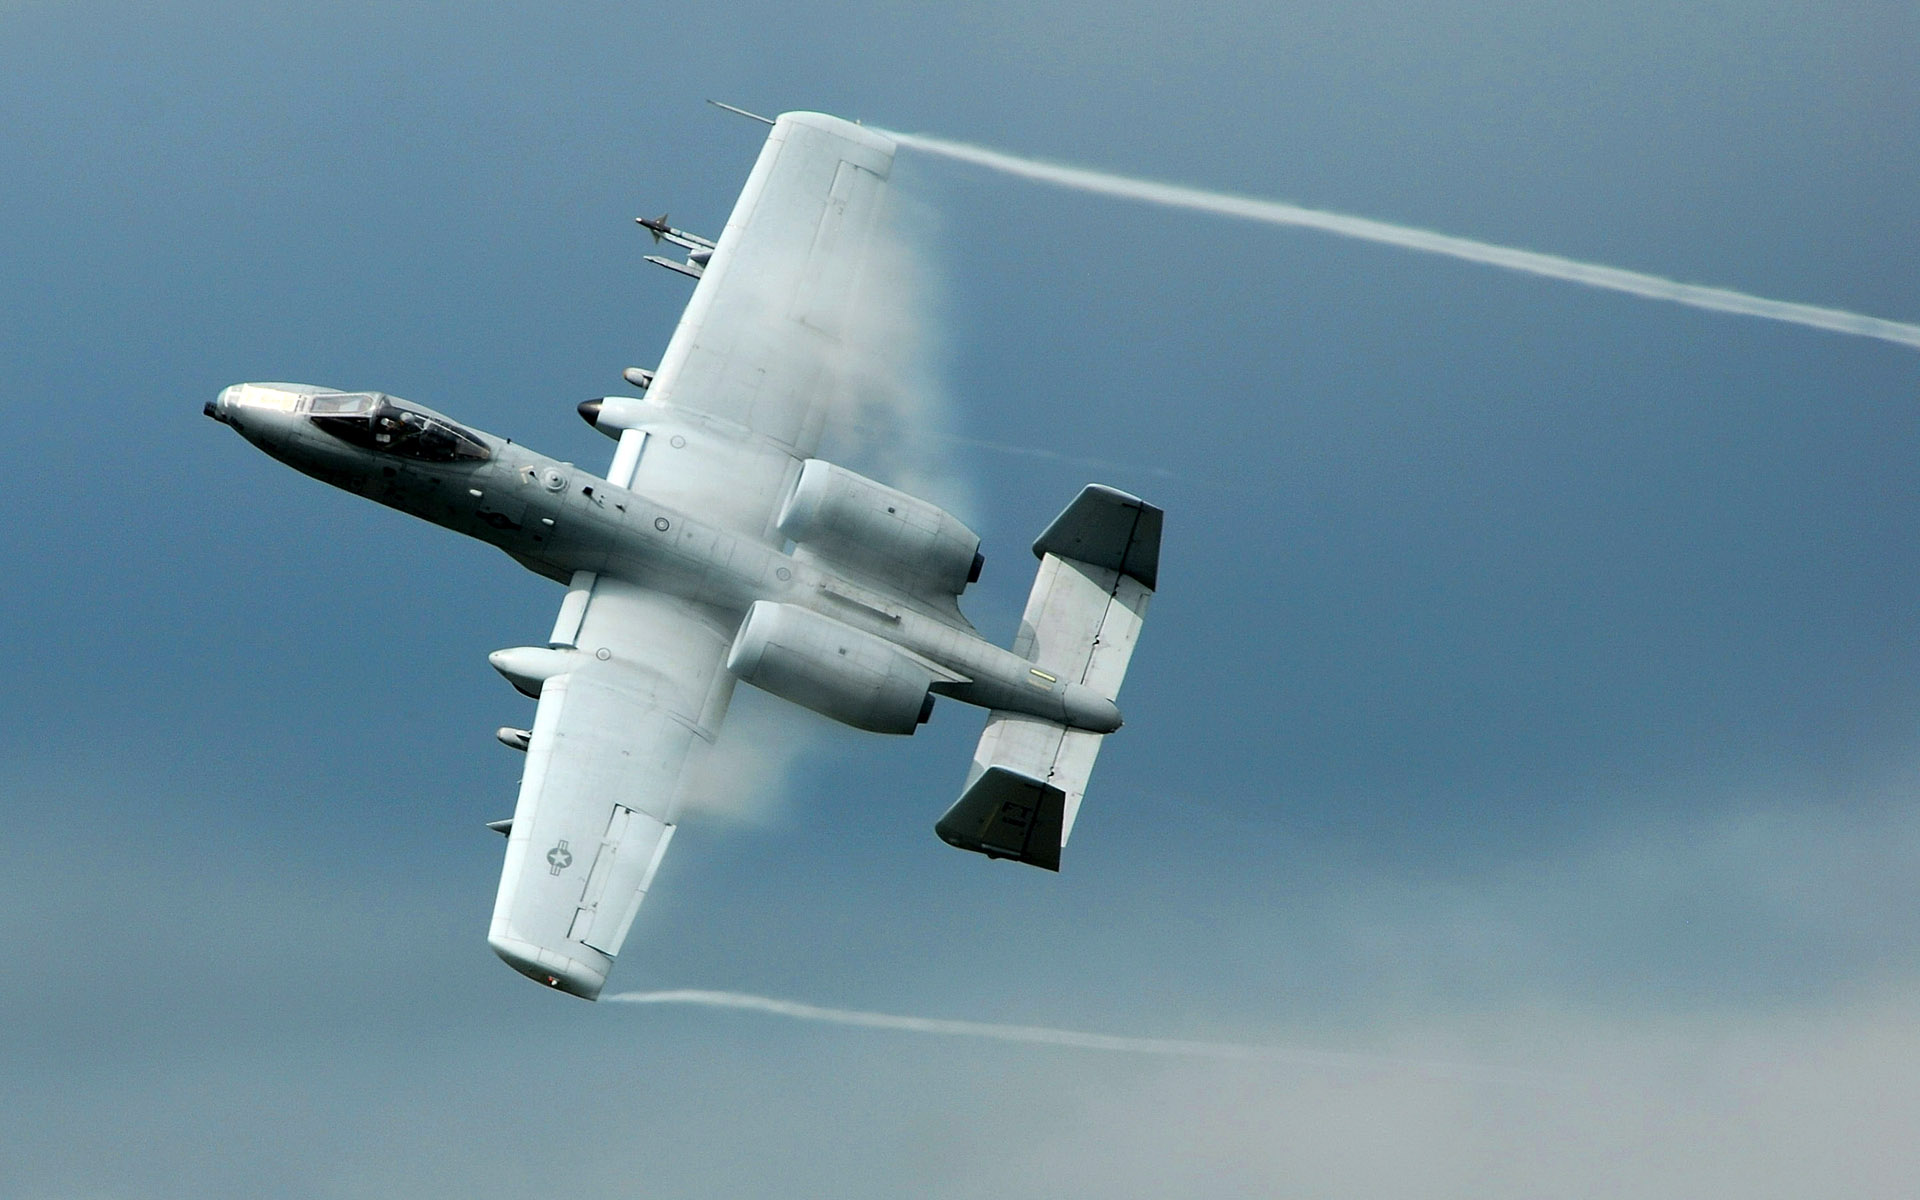 A 10 Thunderbolt II ground attack aircraft 553.91 Kb